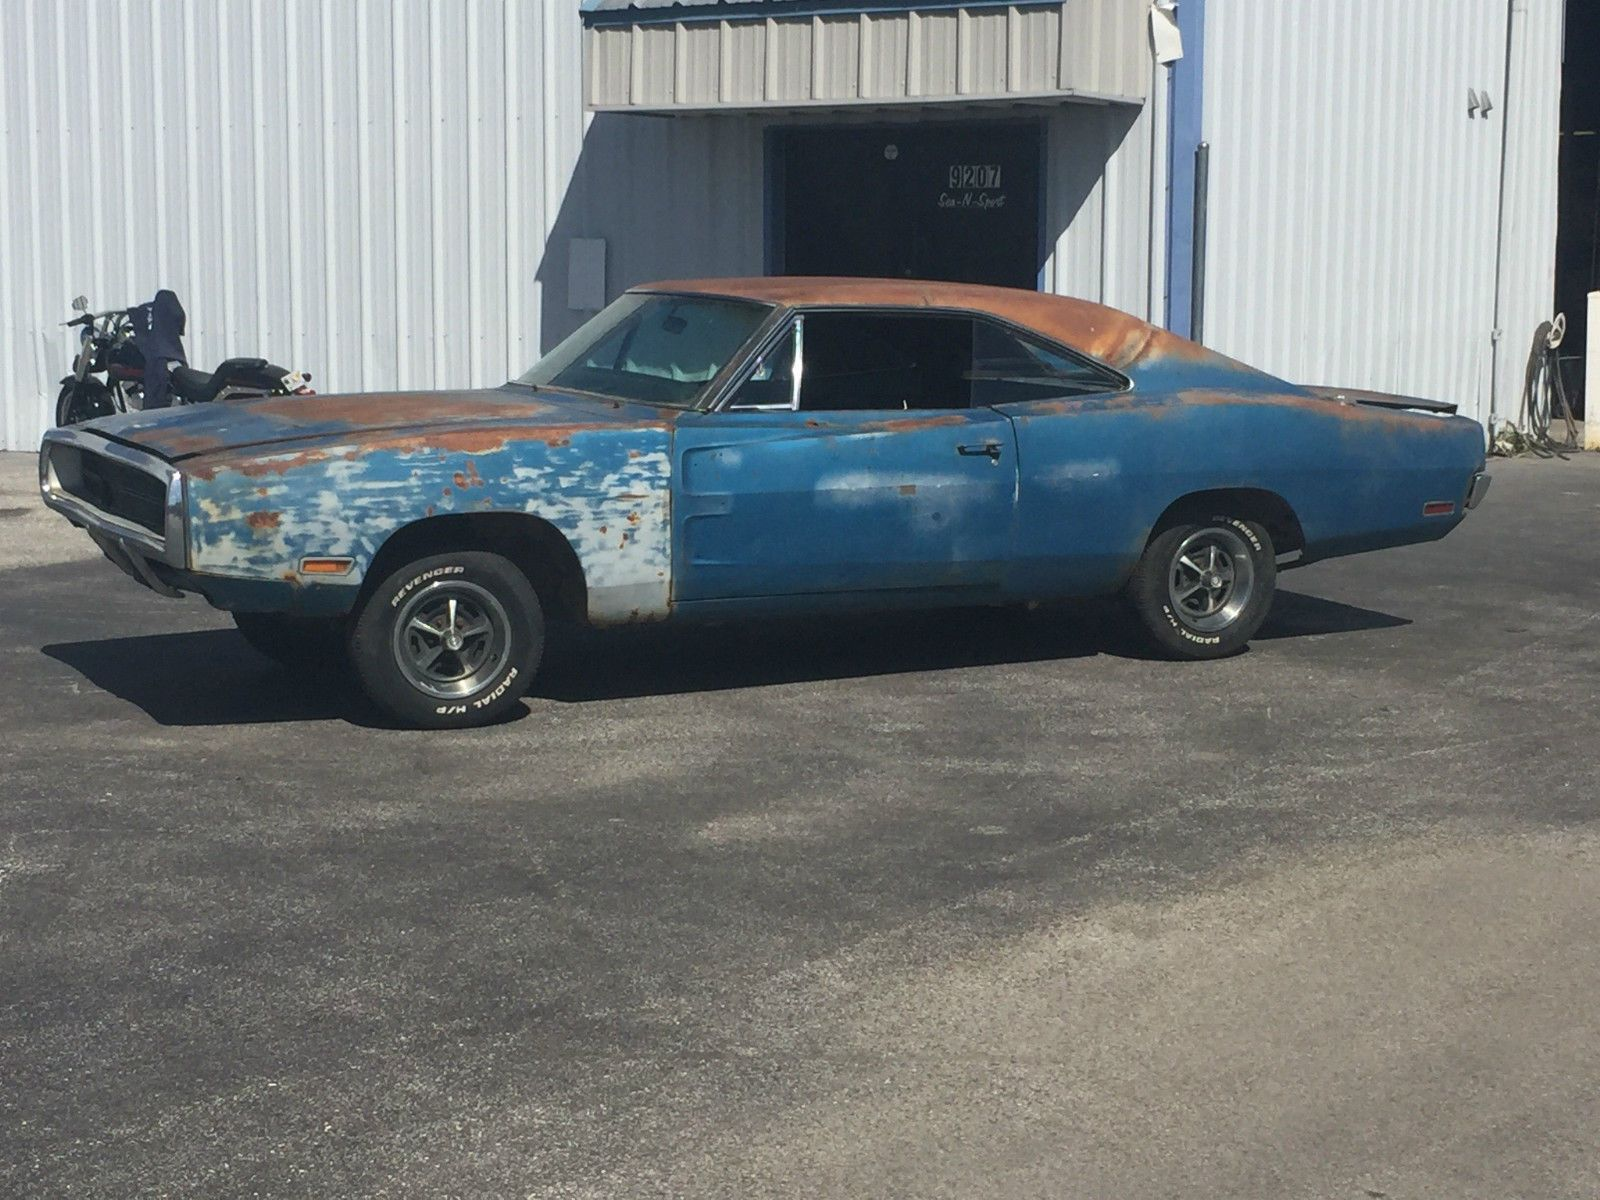 1970 Dodge Charger Rt Project Car Overall Solid Car Project Cars